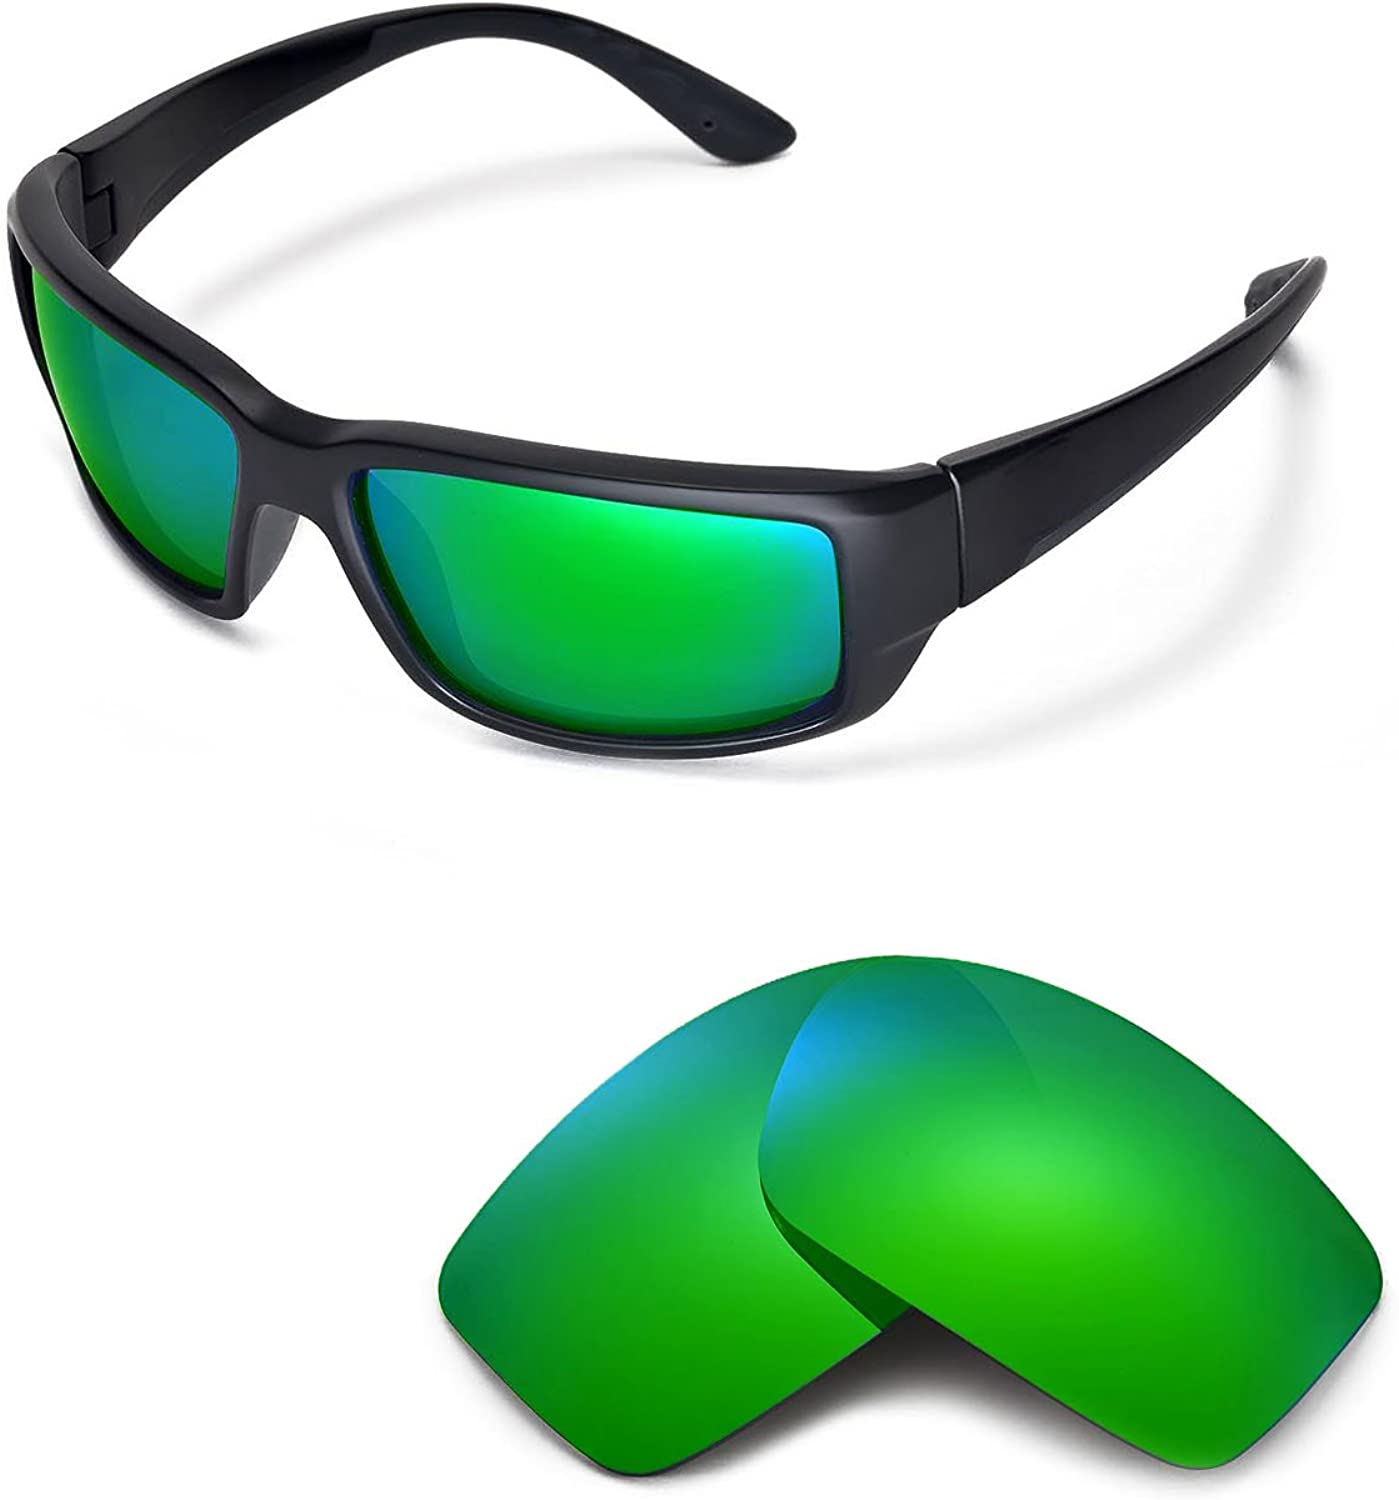 Polarized Replacement Lenses for Costa Rincon Sunglasses by APEX